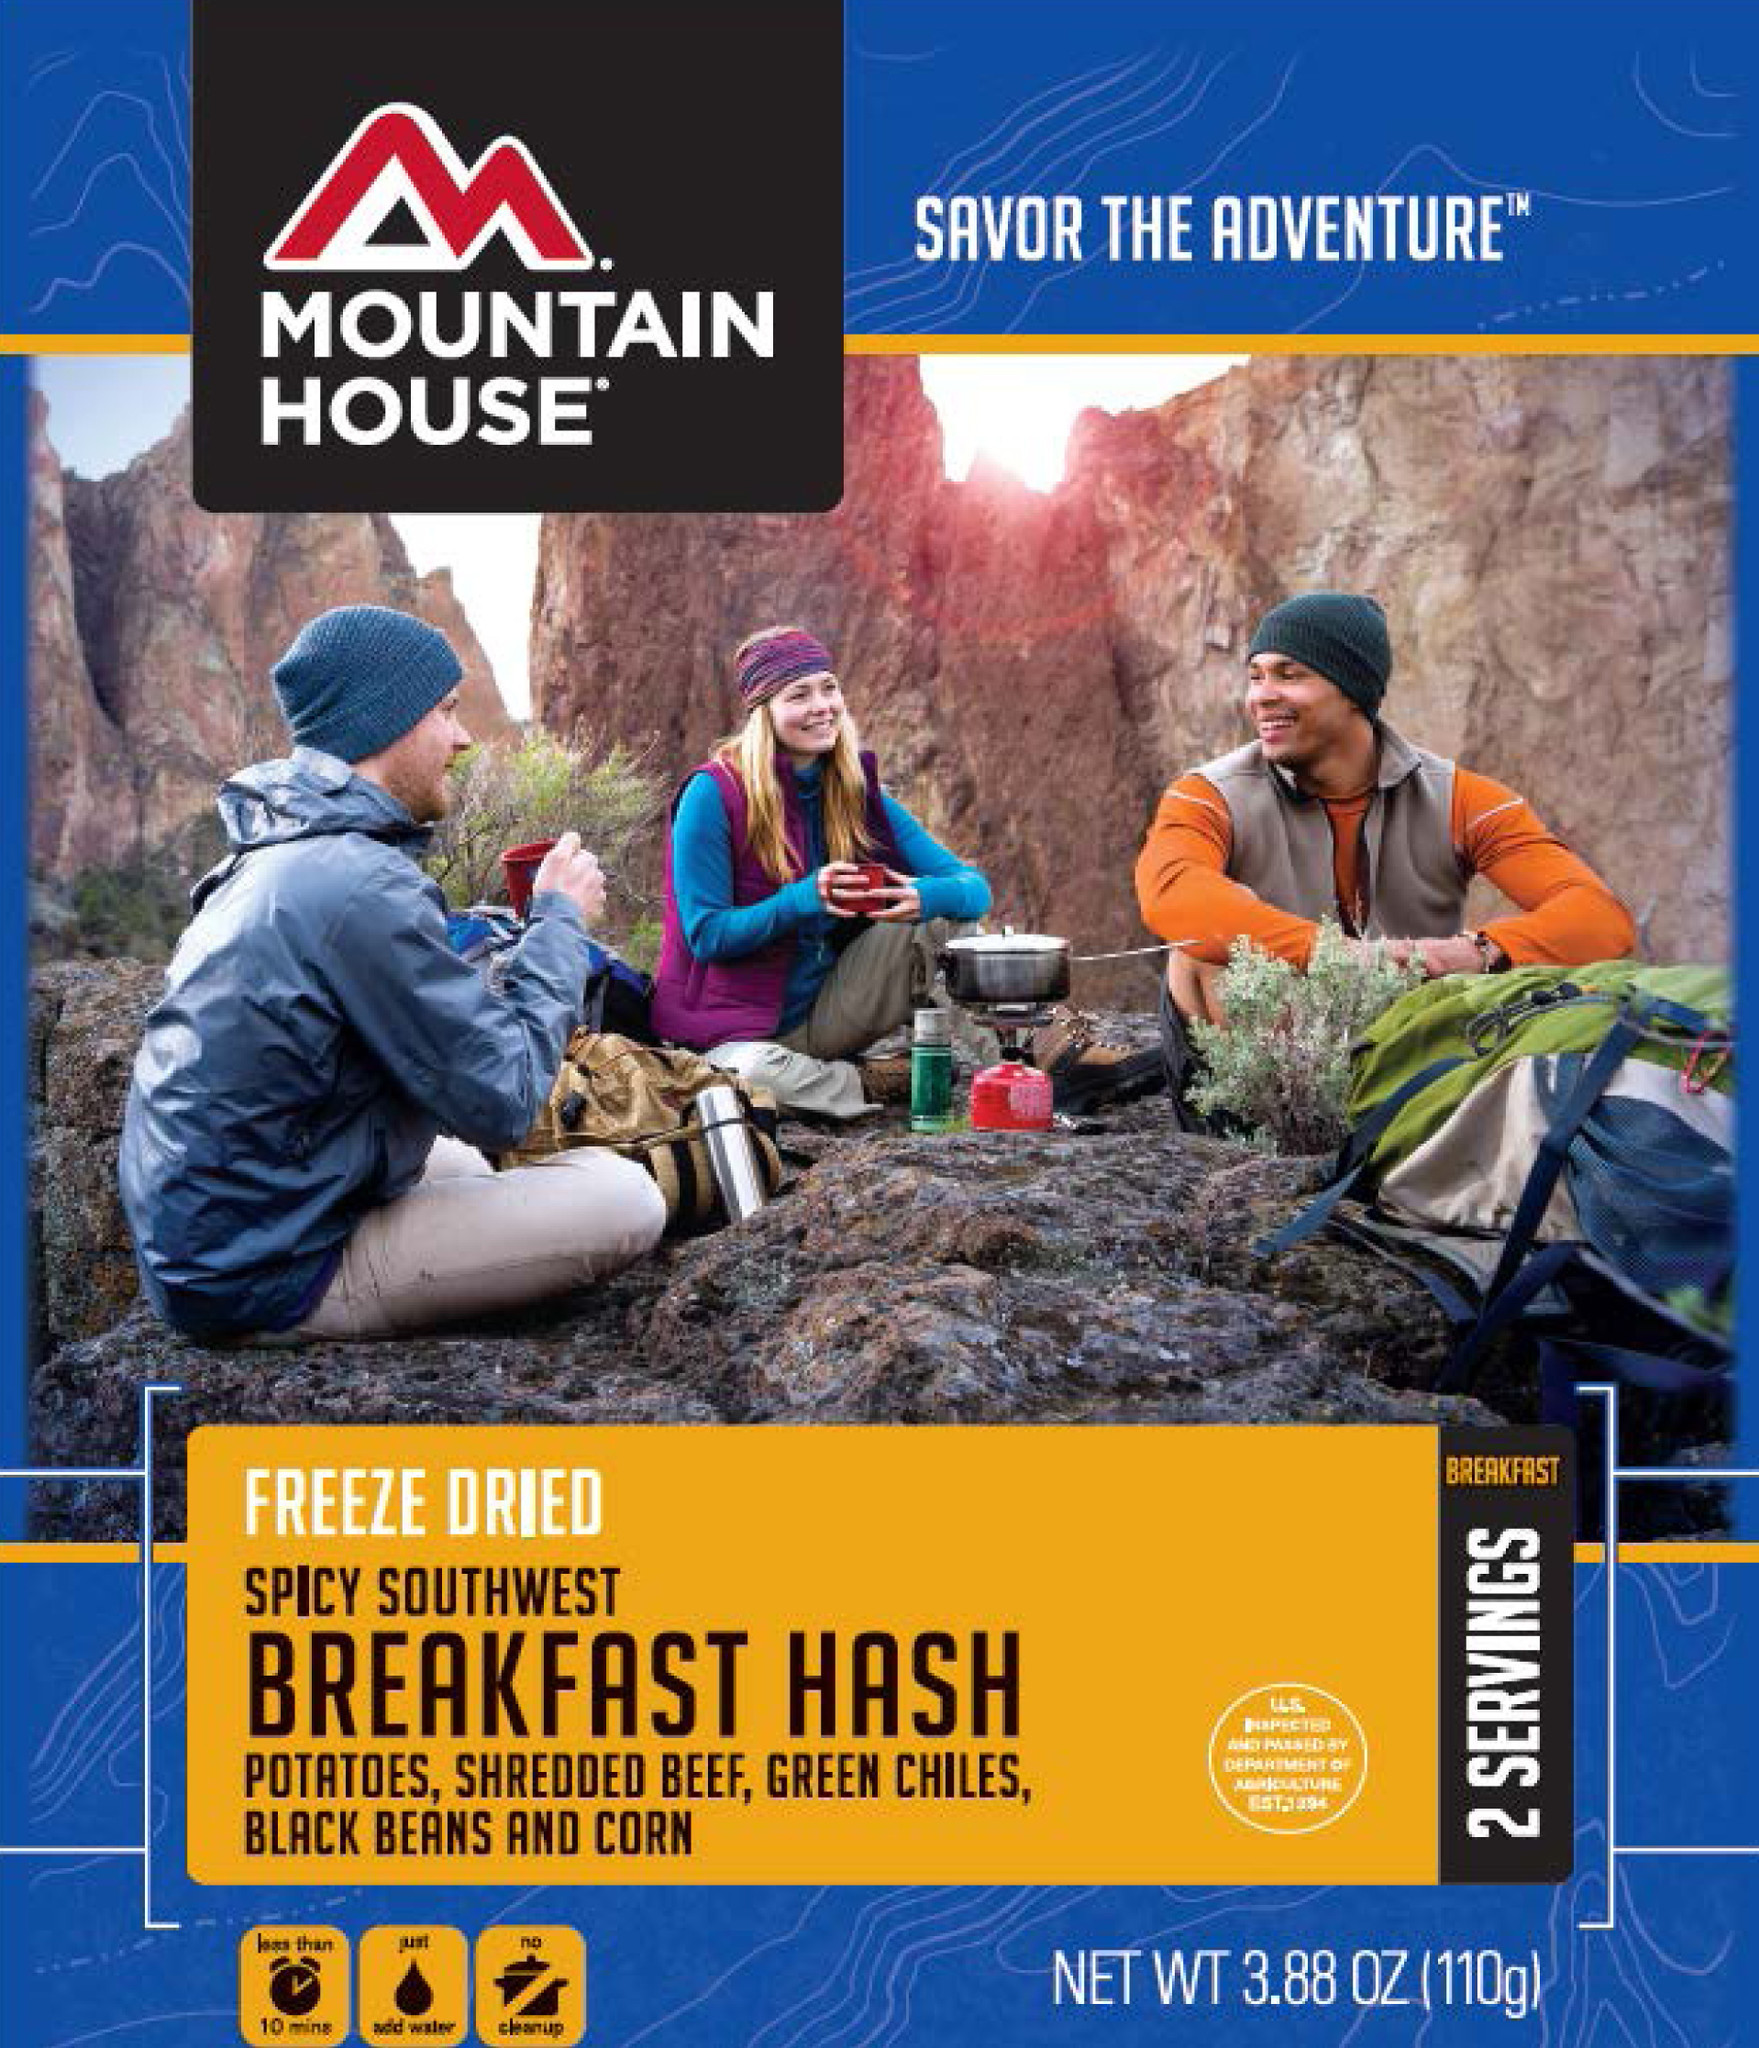 Oct 20,  · REI Item # Mountain House Pasta Primavera Pro-Pak - Single Serving REI Item # Mountain House Lasagna with Meat Sauce Pro-Pak - Single Serving REI Item # I find the mountain house egg breakfasts absolutely disgusting and so go with a breakfast of oatmeal with cream and dried fruit.